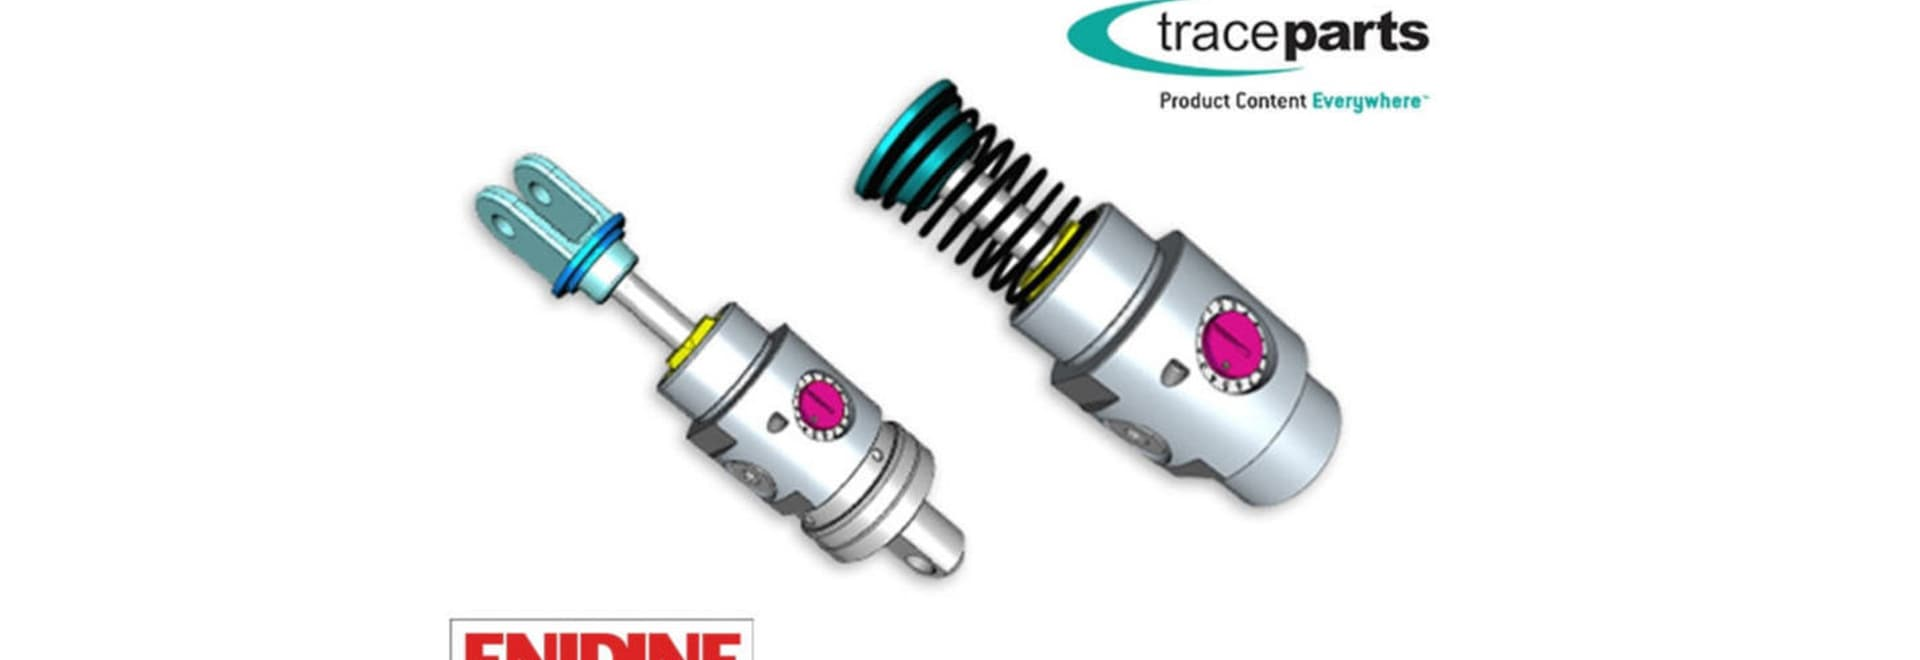 Enidine Product Catalog Available on TraceParts CAD Content Platform